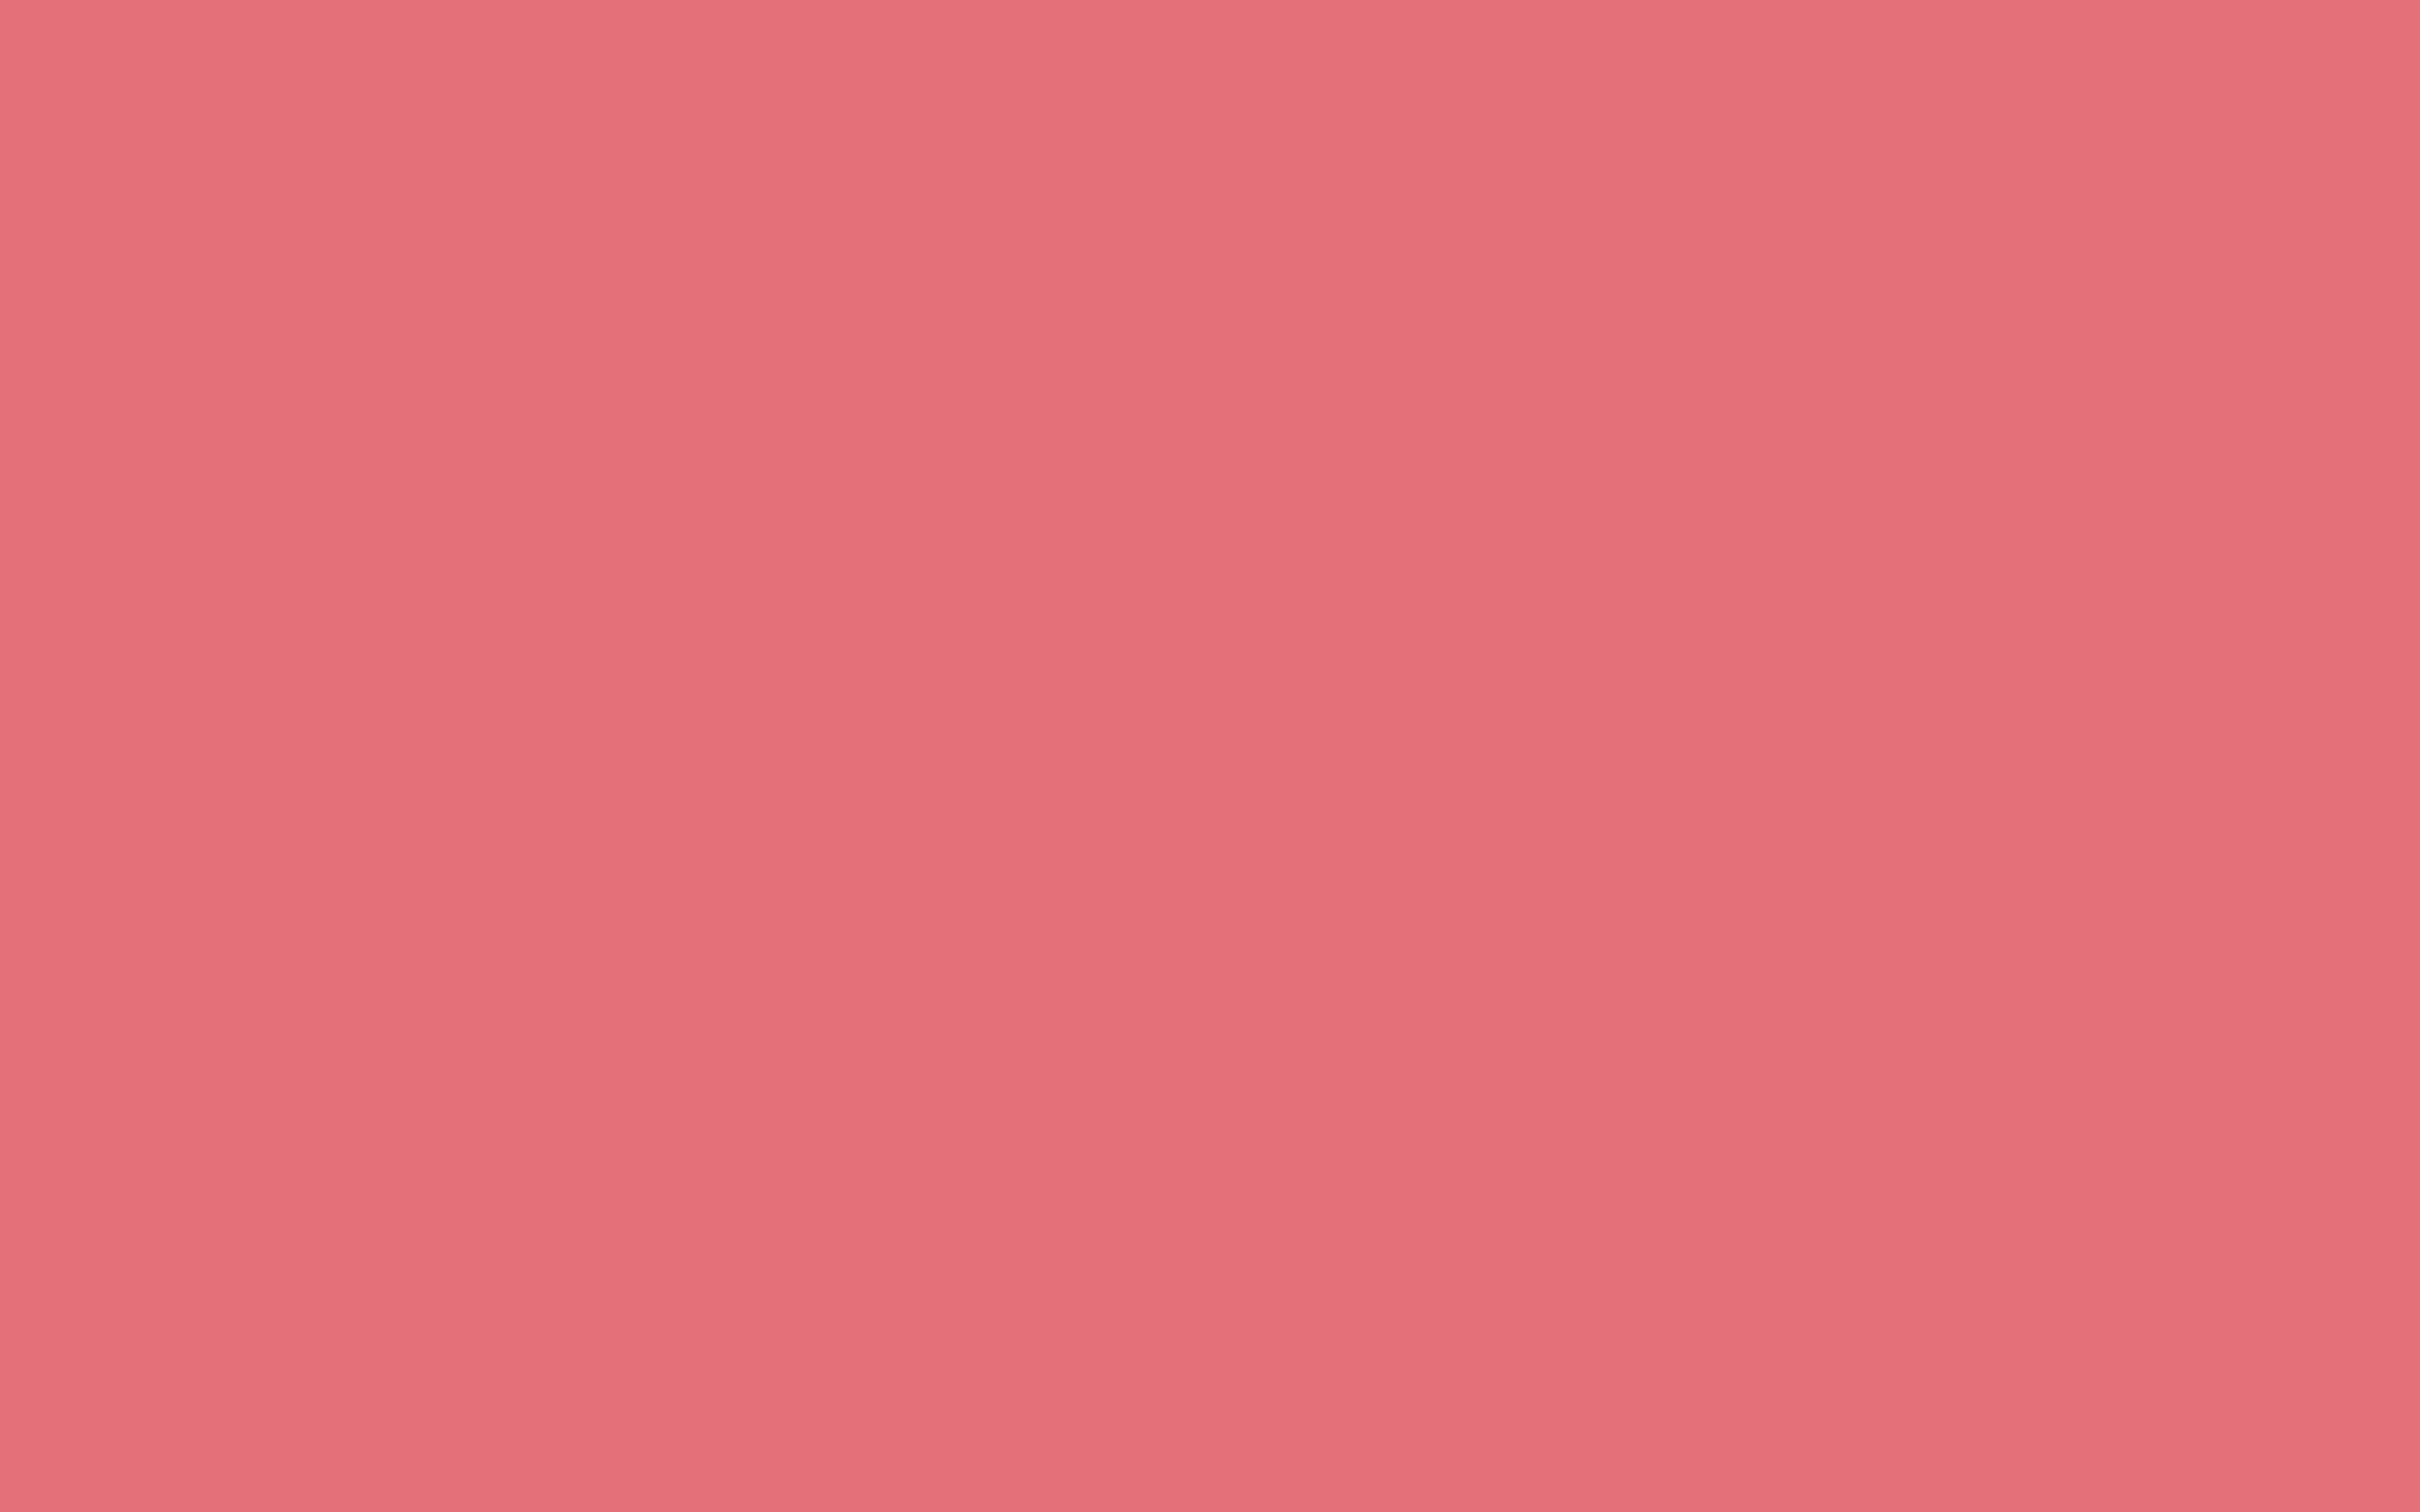 2880x1800 Tango Pink Solid Color Background